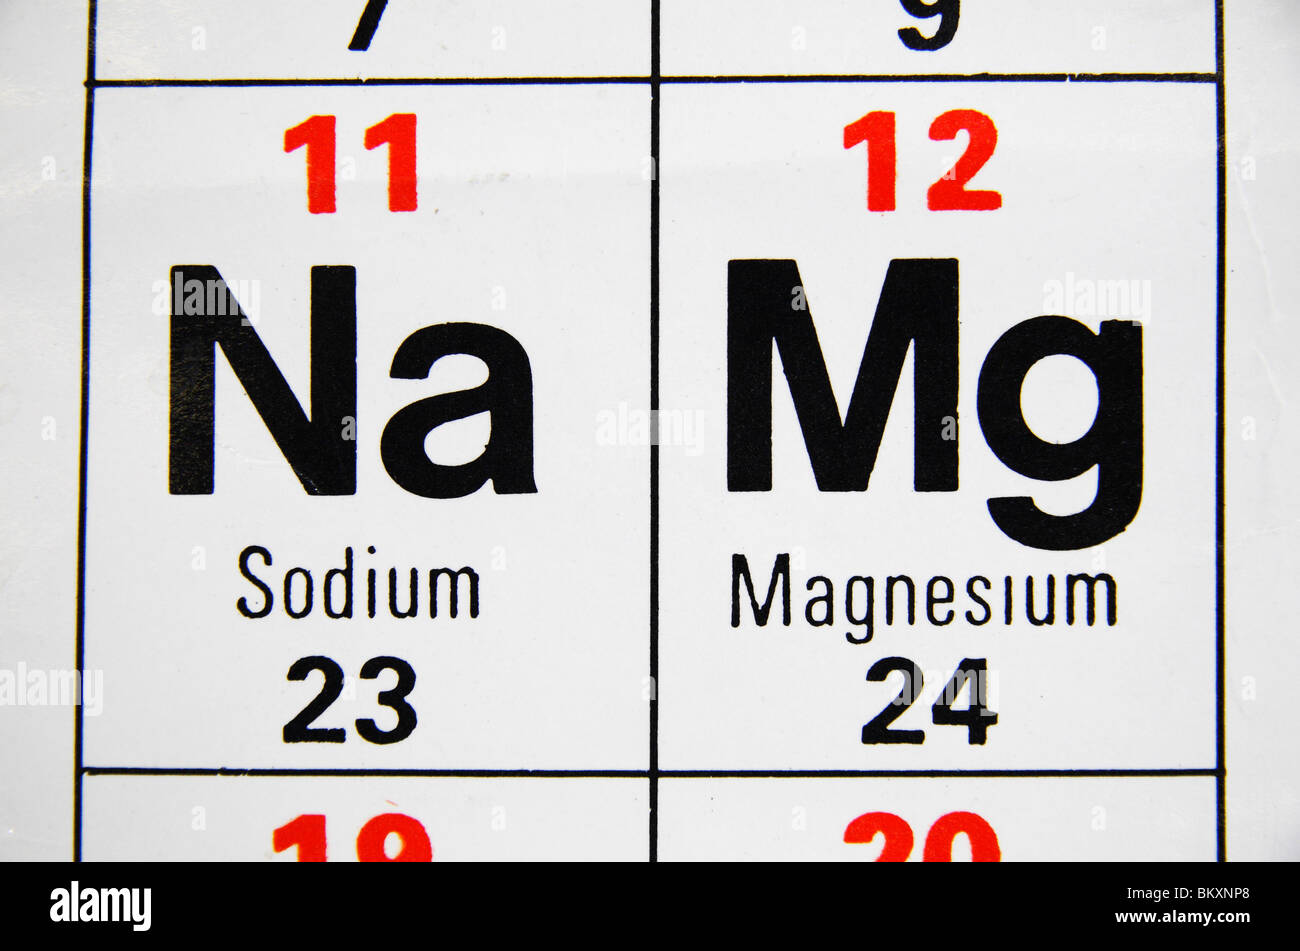 Close up view of a uk high school periodic table focusing on close up view of a uk high school periodic table focusing on sodium na and magnesium mg gamestrikefo Gallery